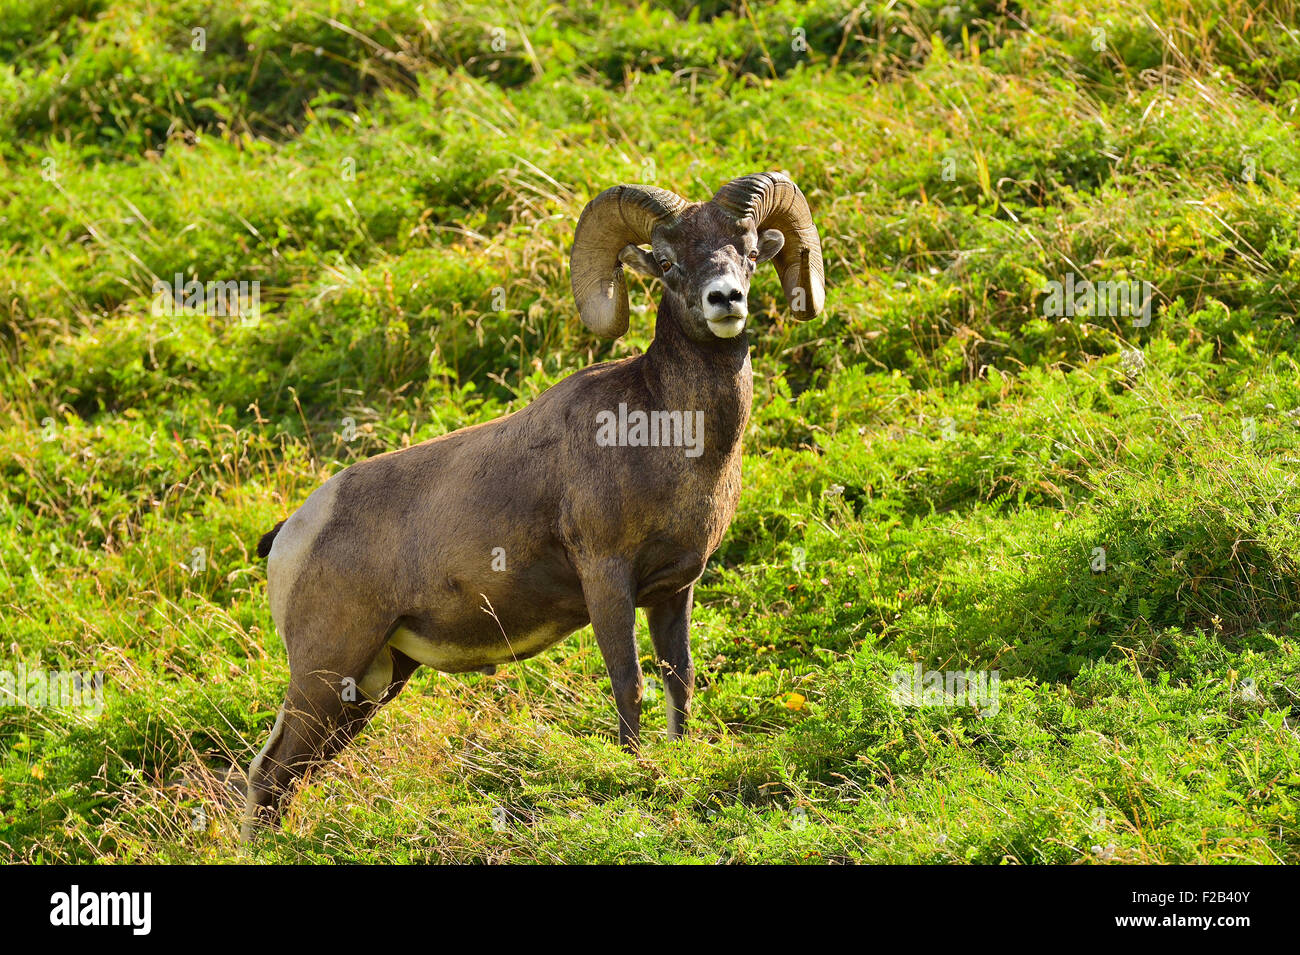 A wild Bighorn ram Orvis canadensis; standing in the lush vegetation on a hillside near Cadomin Alberta Canada - Stock Image